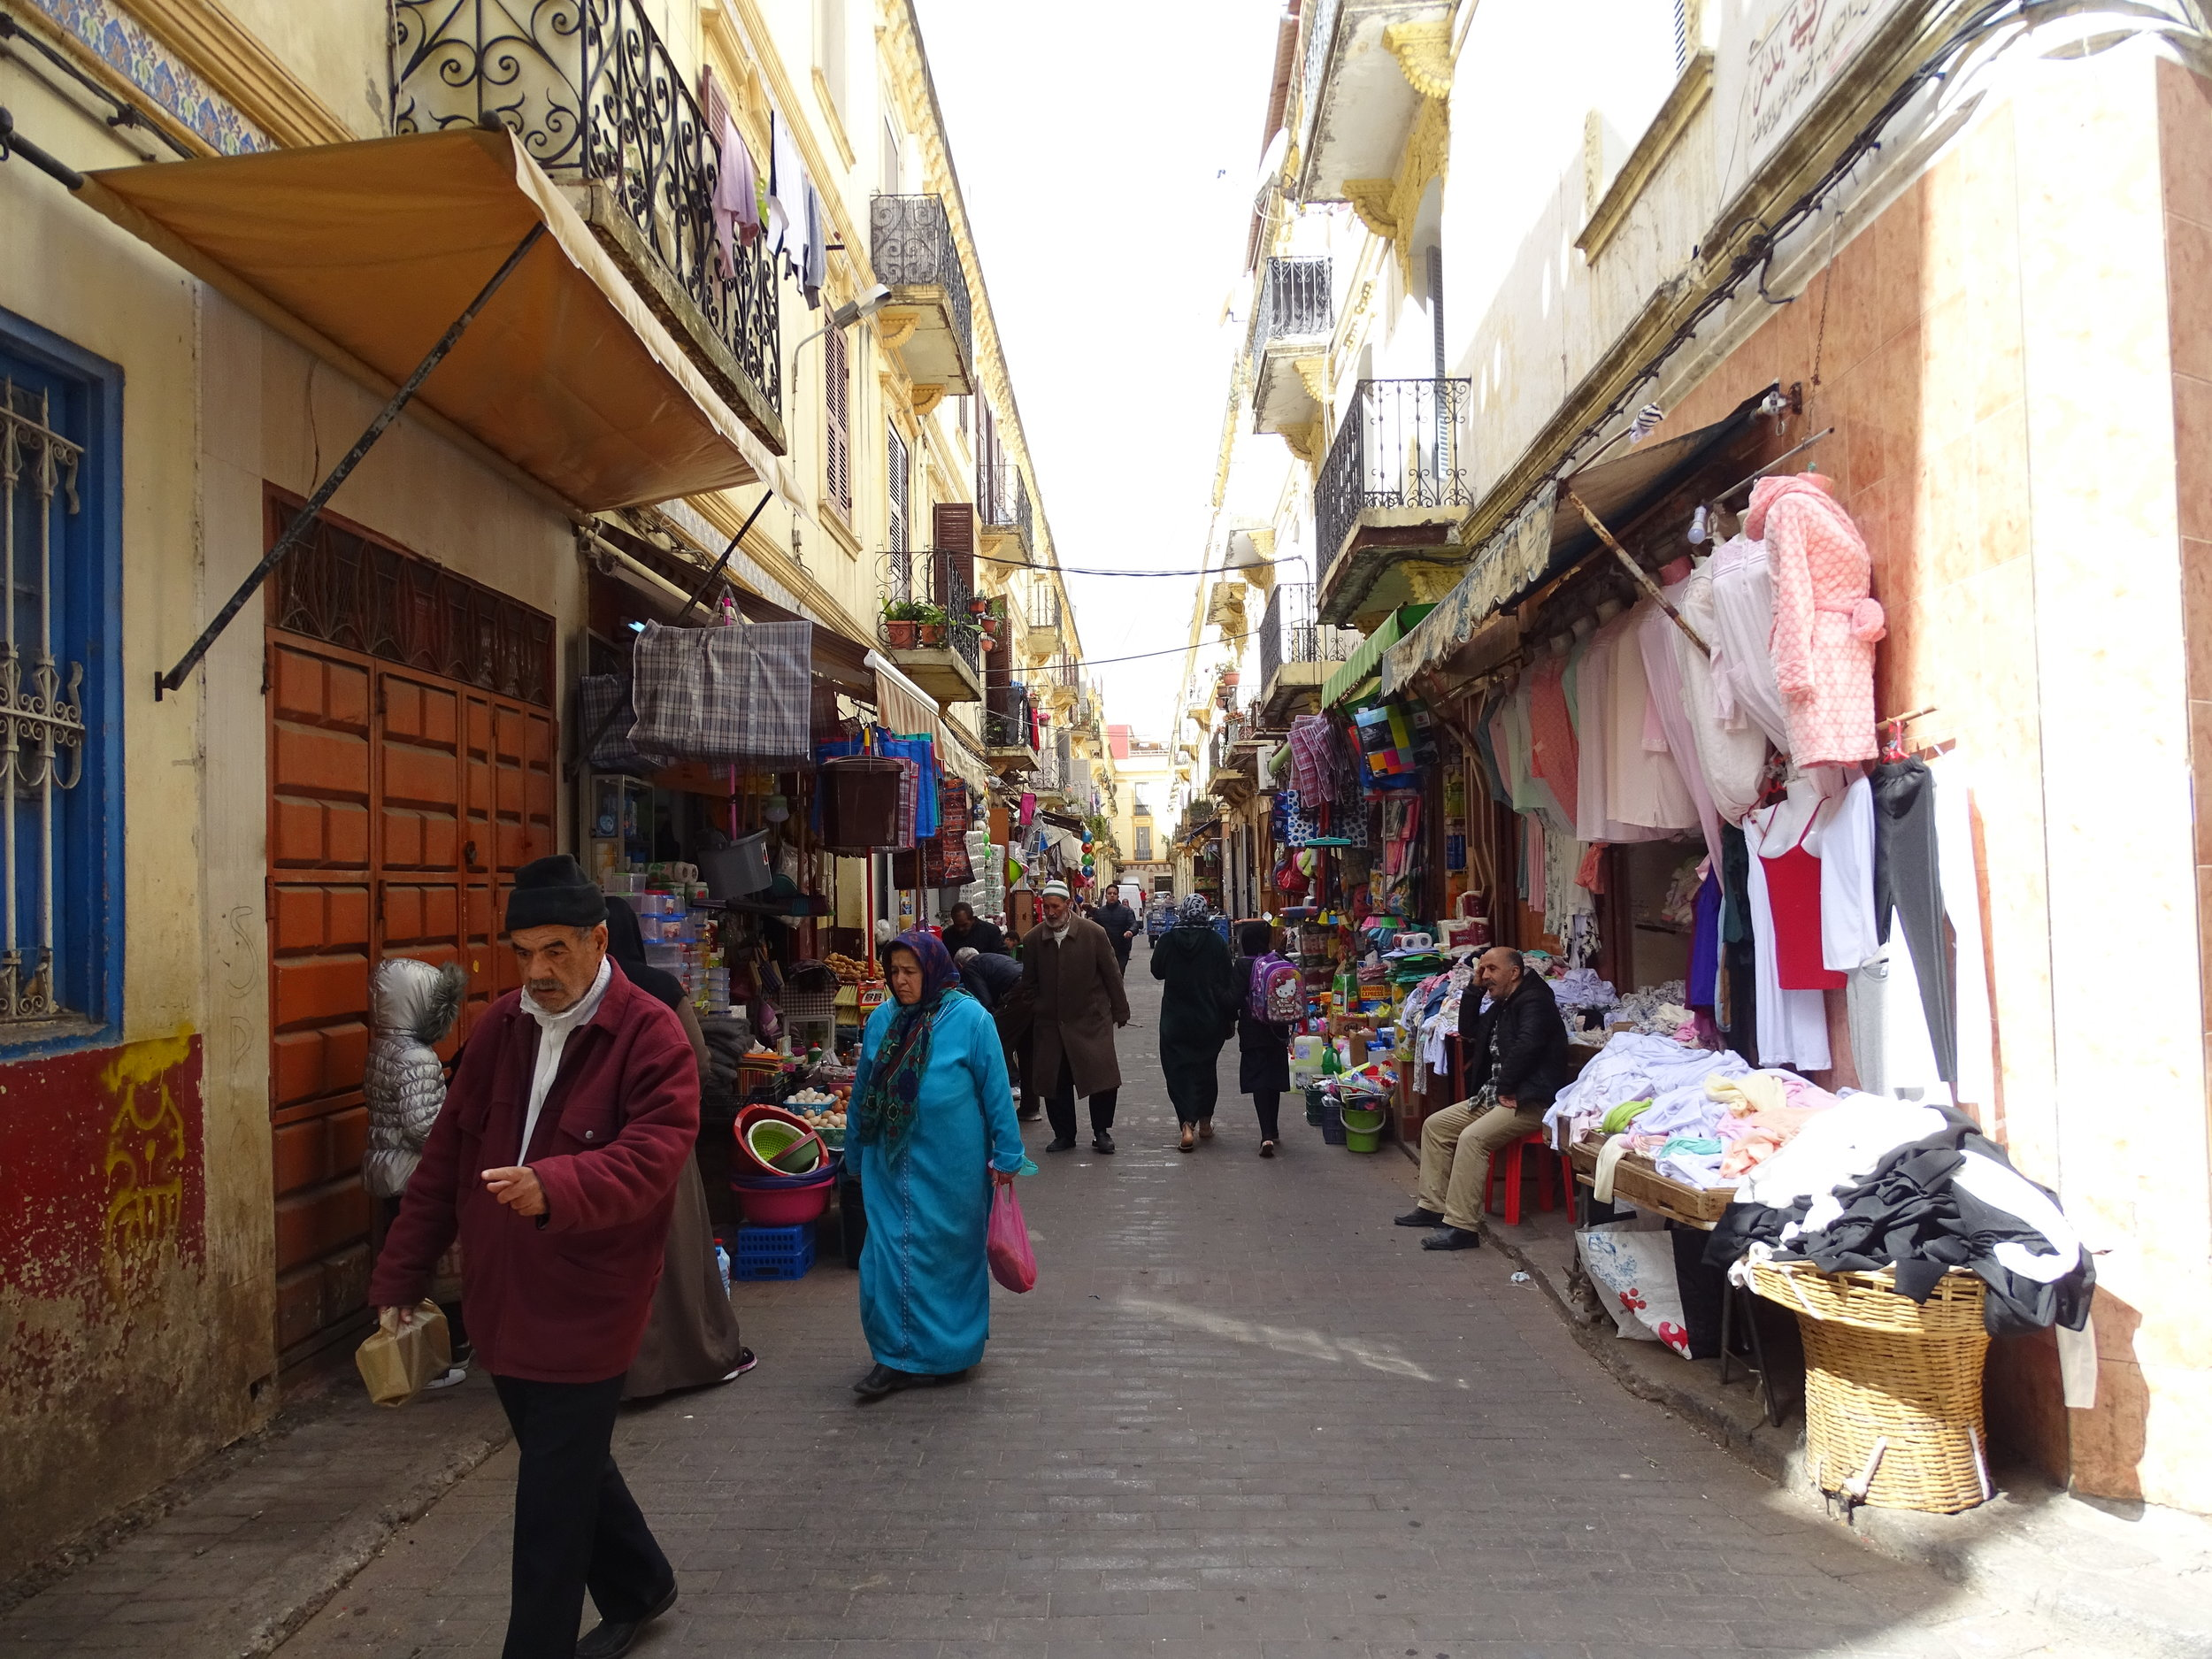 One of many markets in the medina